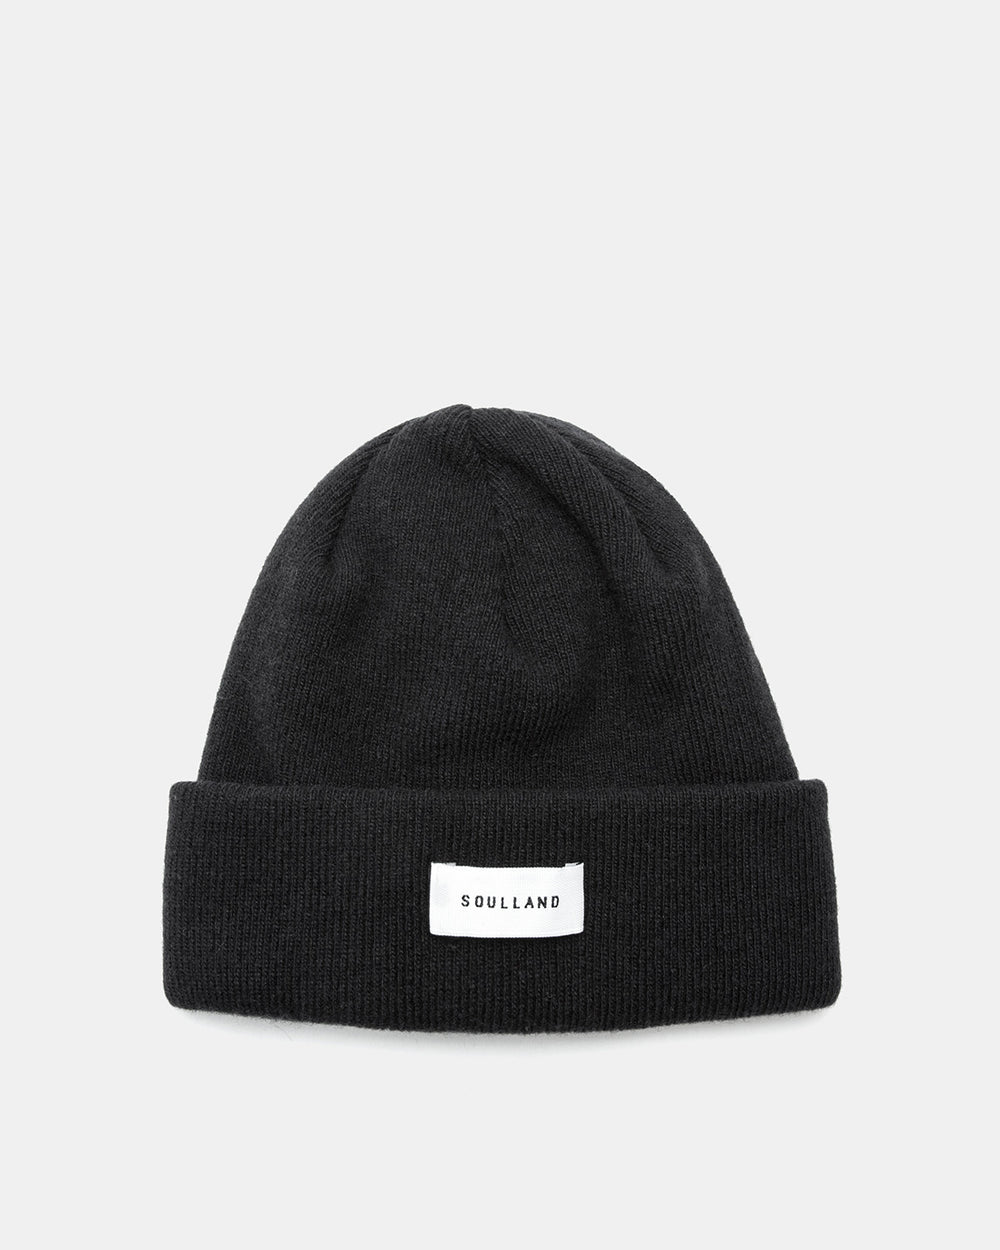 Soulland - Villy Beanie (Black)